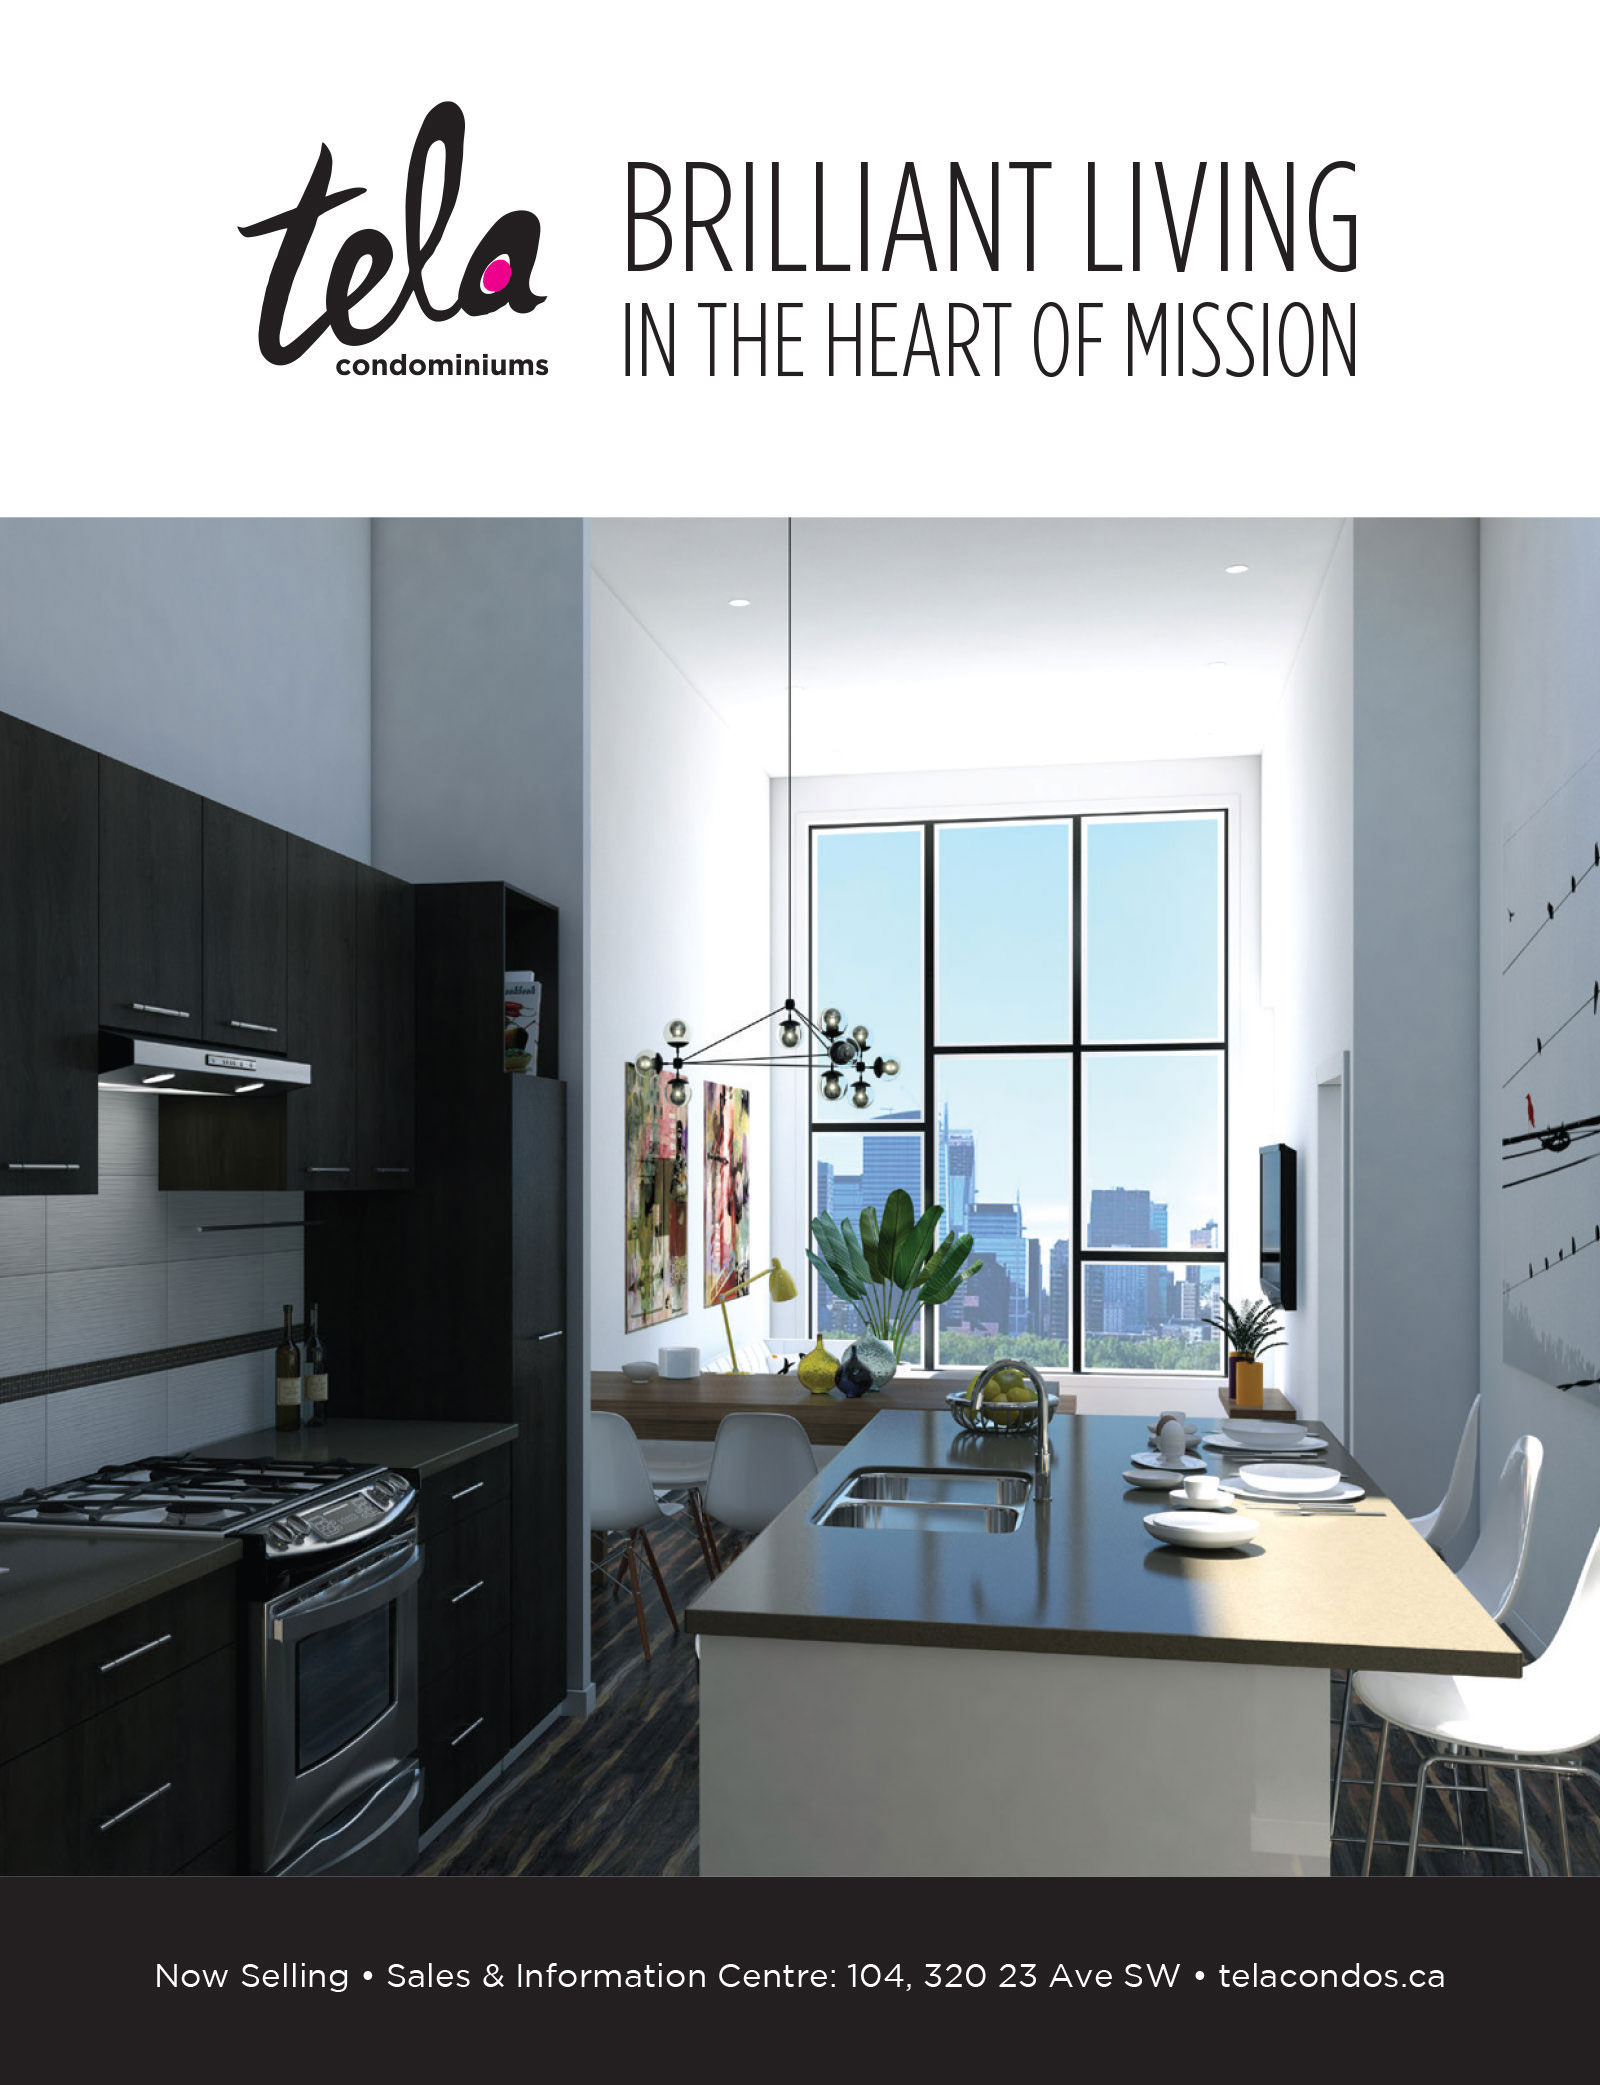 Tela Condominiums: residential development marketing